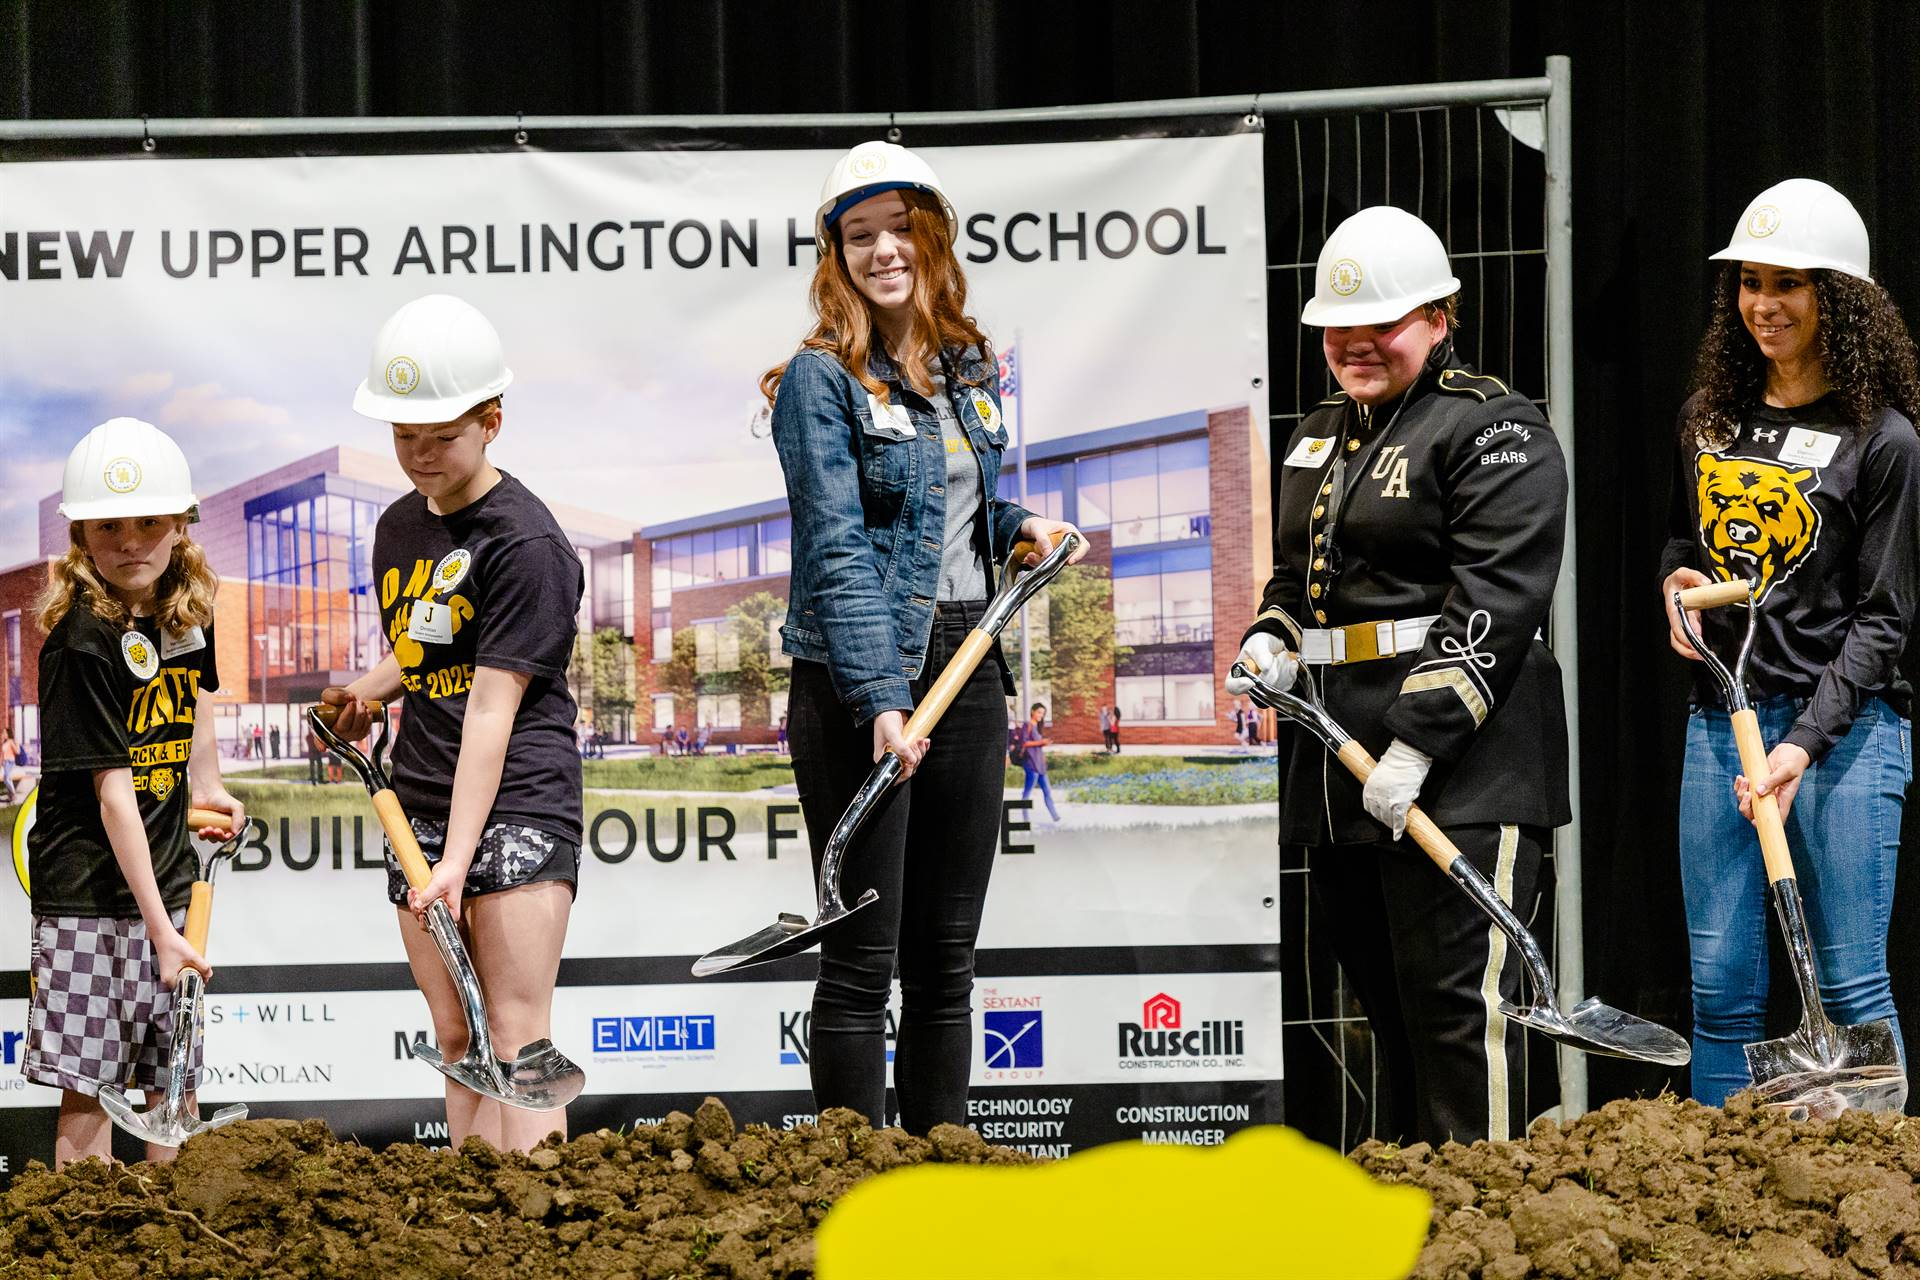 Student ambassadors breaking ground